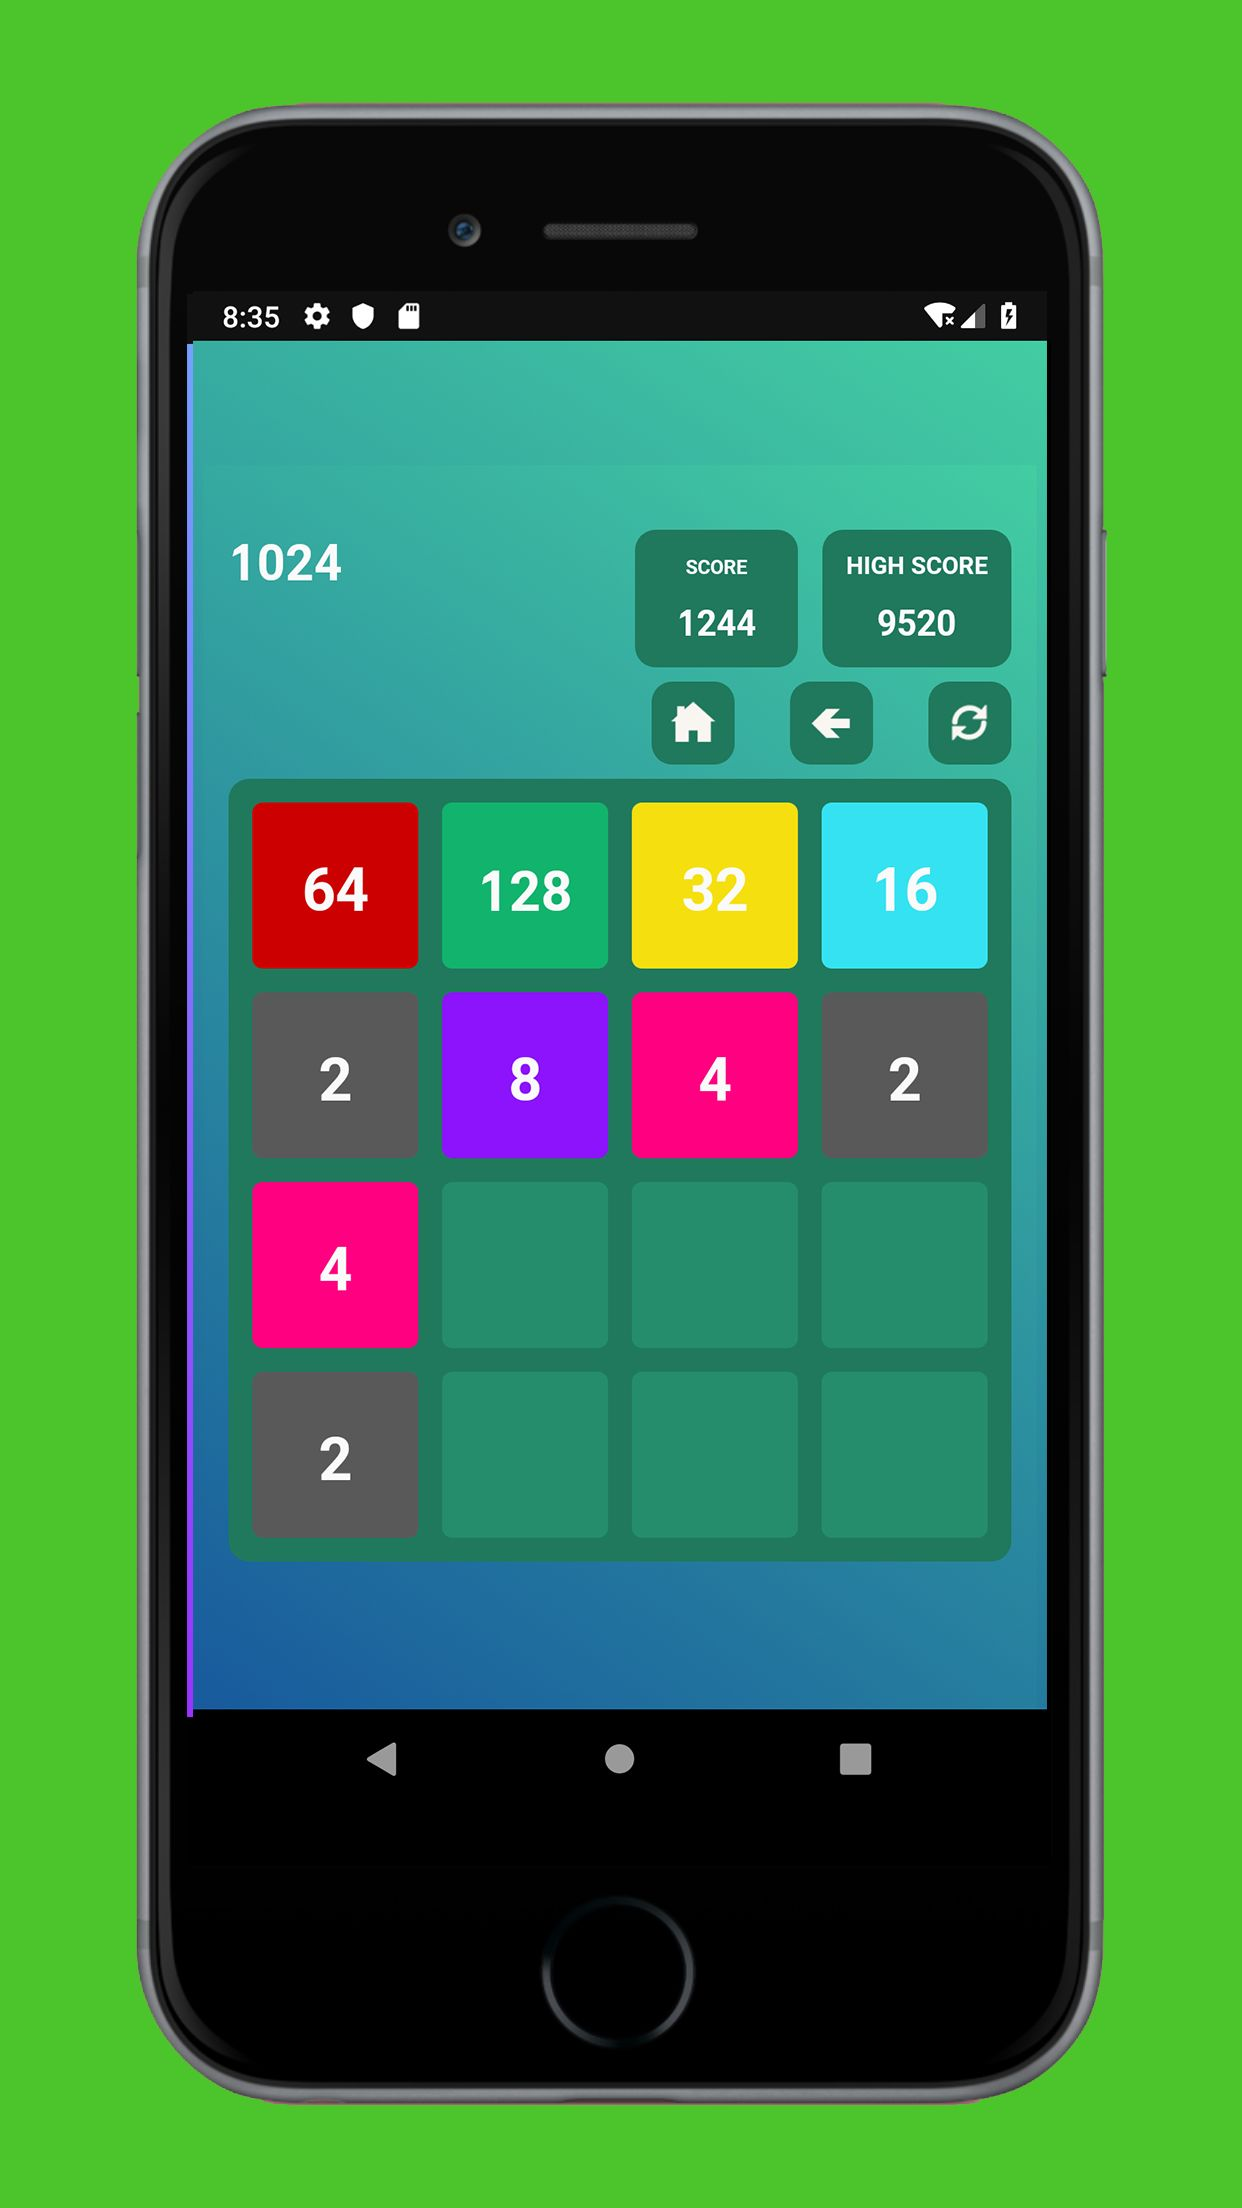 Swipe Game Version Basic - Android Template Screenshot 6